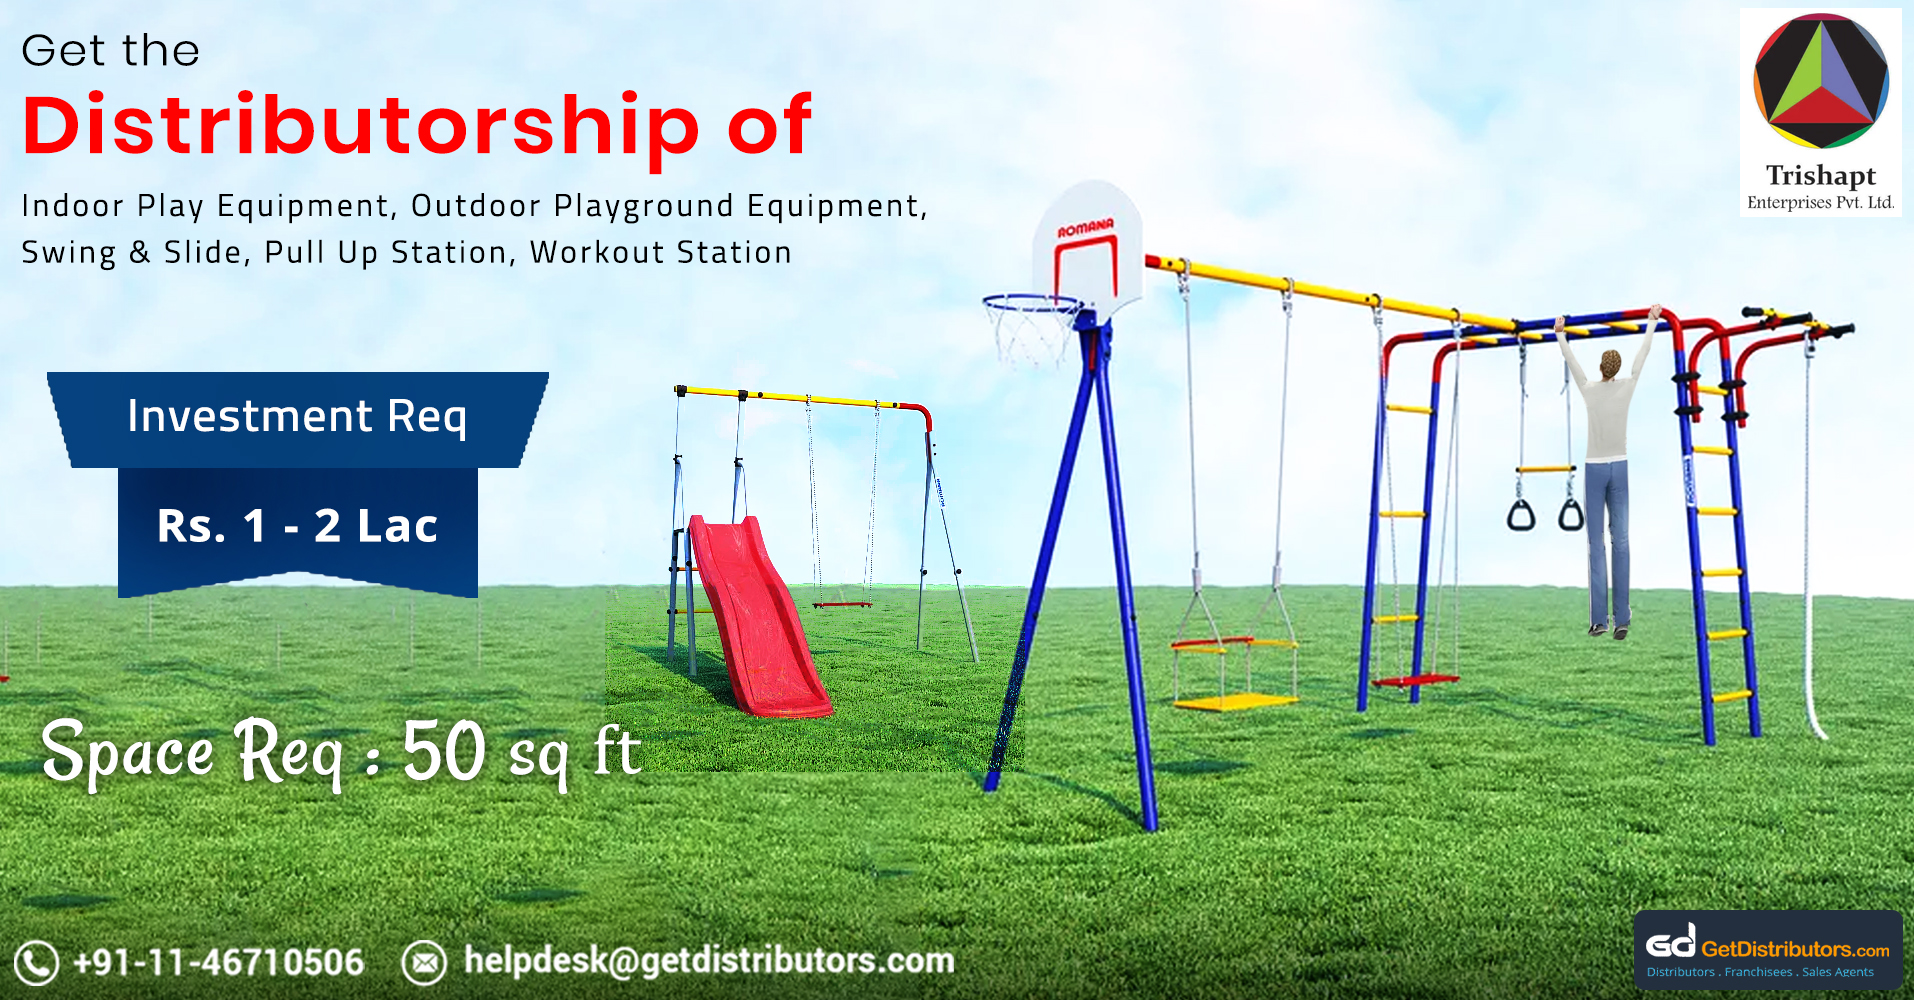 Highly Reliable And Sturdy Playground Equipment For Distribution